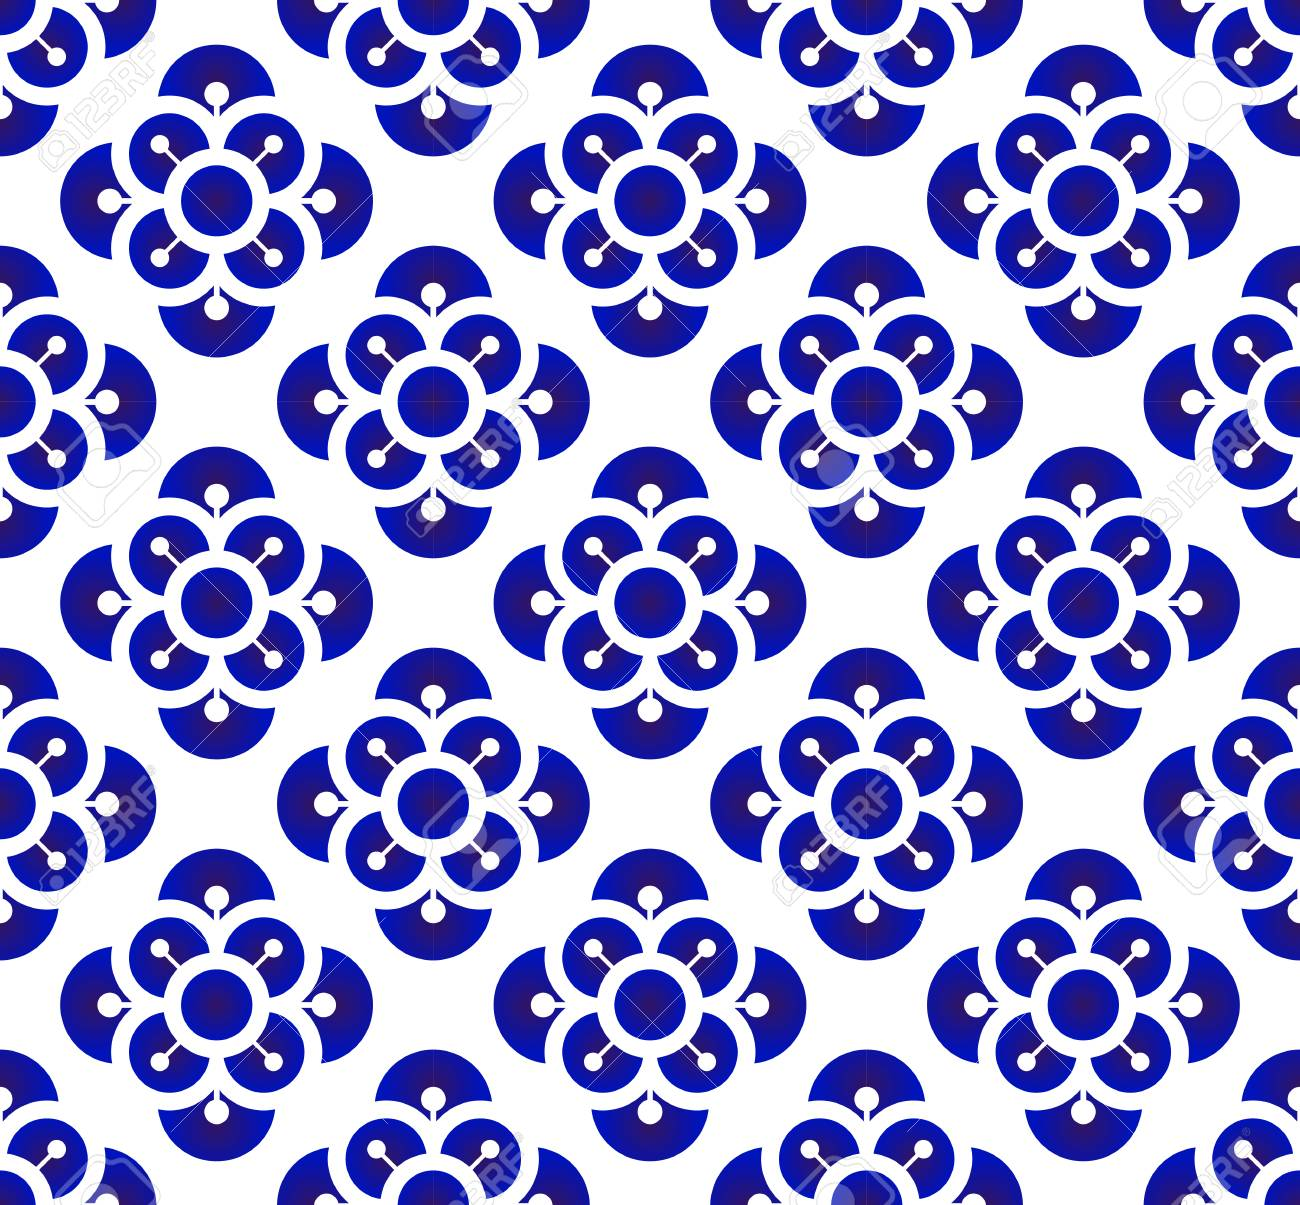 Ceramic Flower Backdrop Chinese Style Seamless Blue And White Royalty Free Cliparts Vectors And Stock Illustration Image 101012164